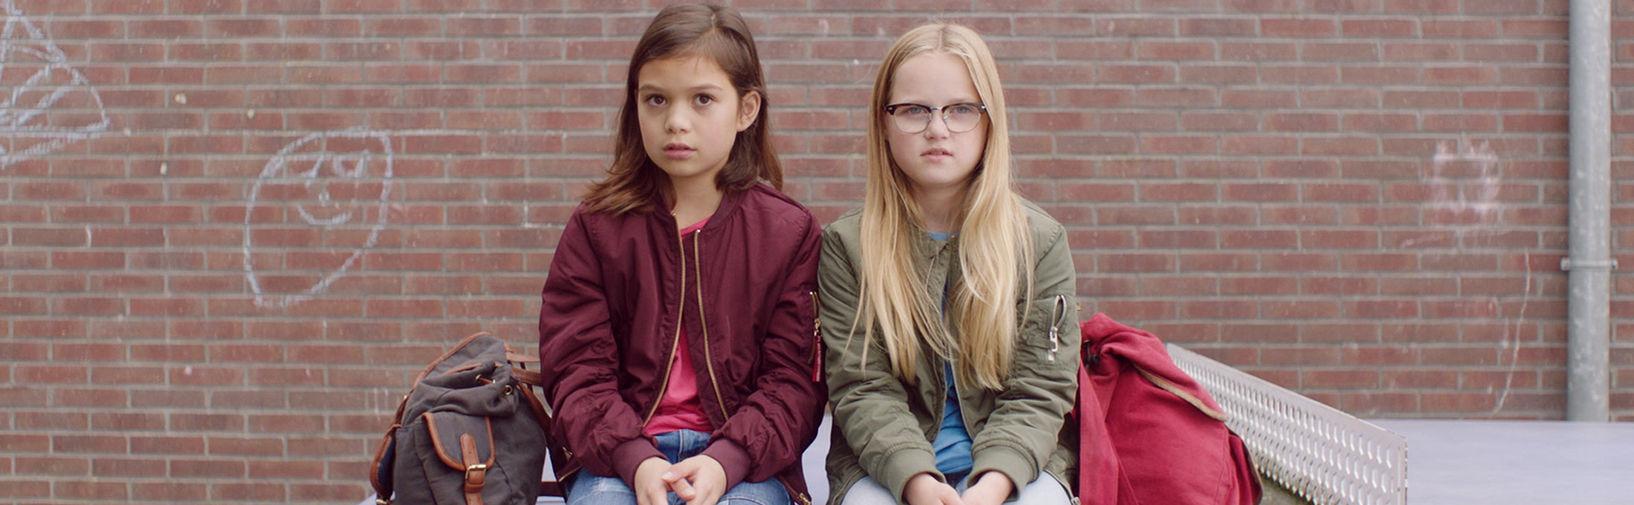 Floor Rules wins Cinekid Leeuw Jury award hero image